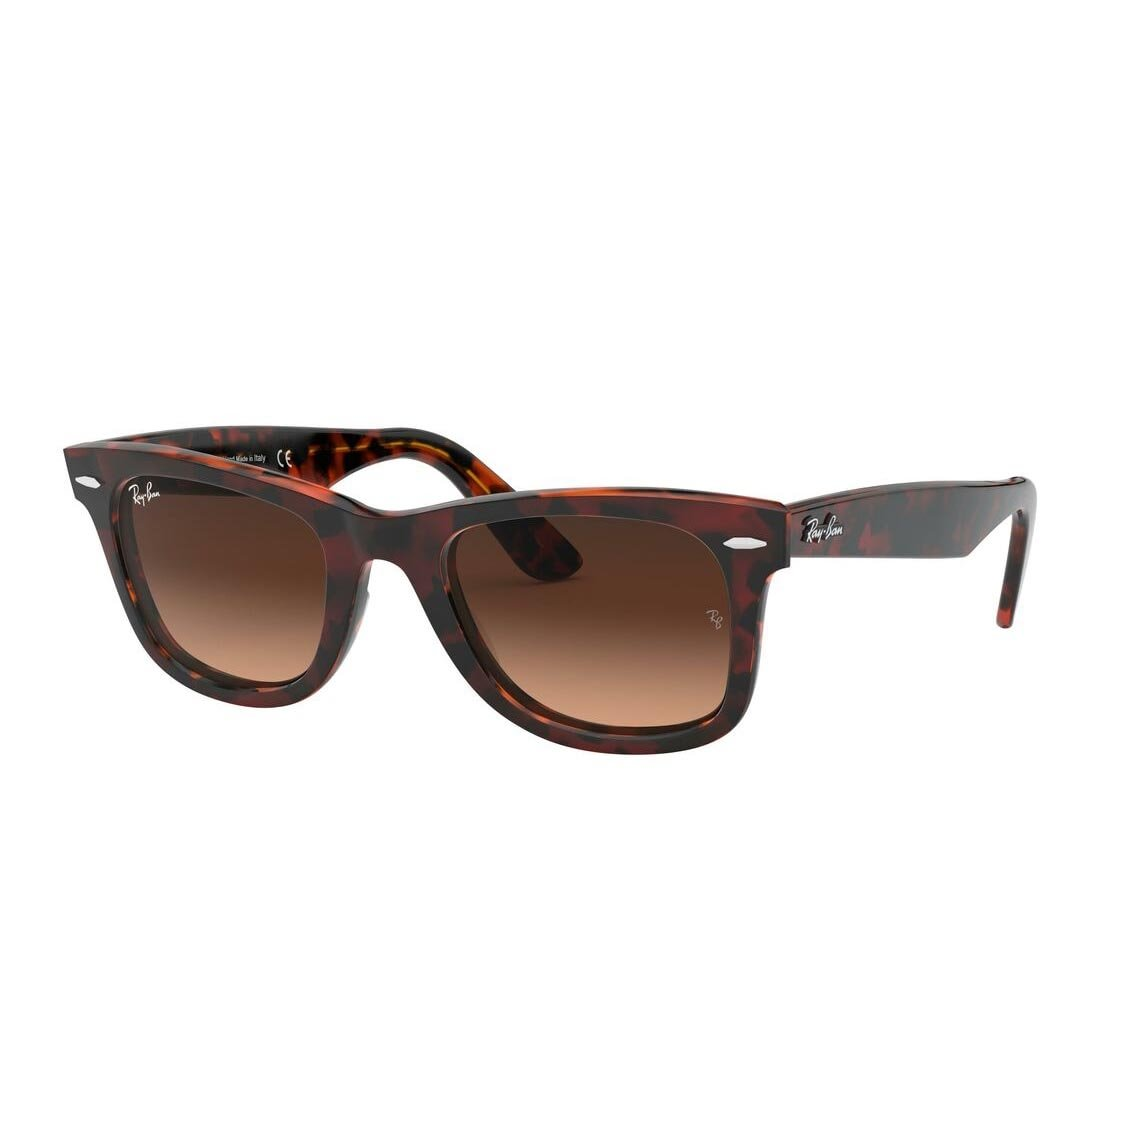 Ray-Ban Original Wayfarer Color Mix RB2140 1275A5 5022